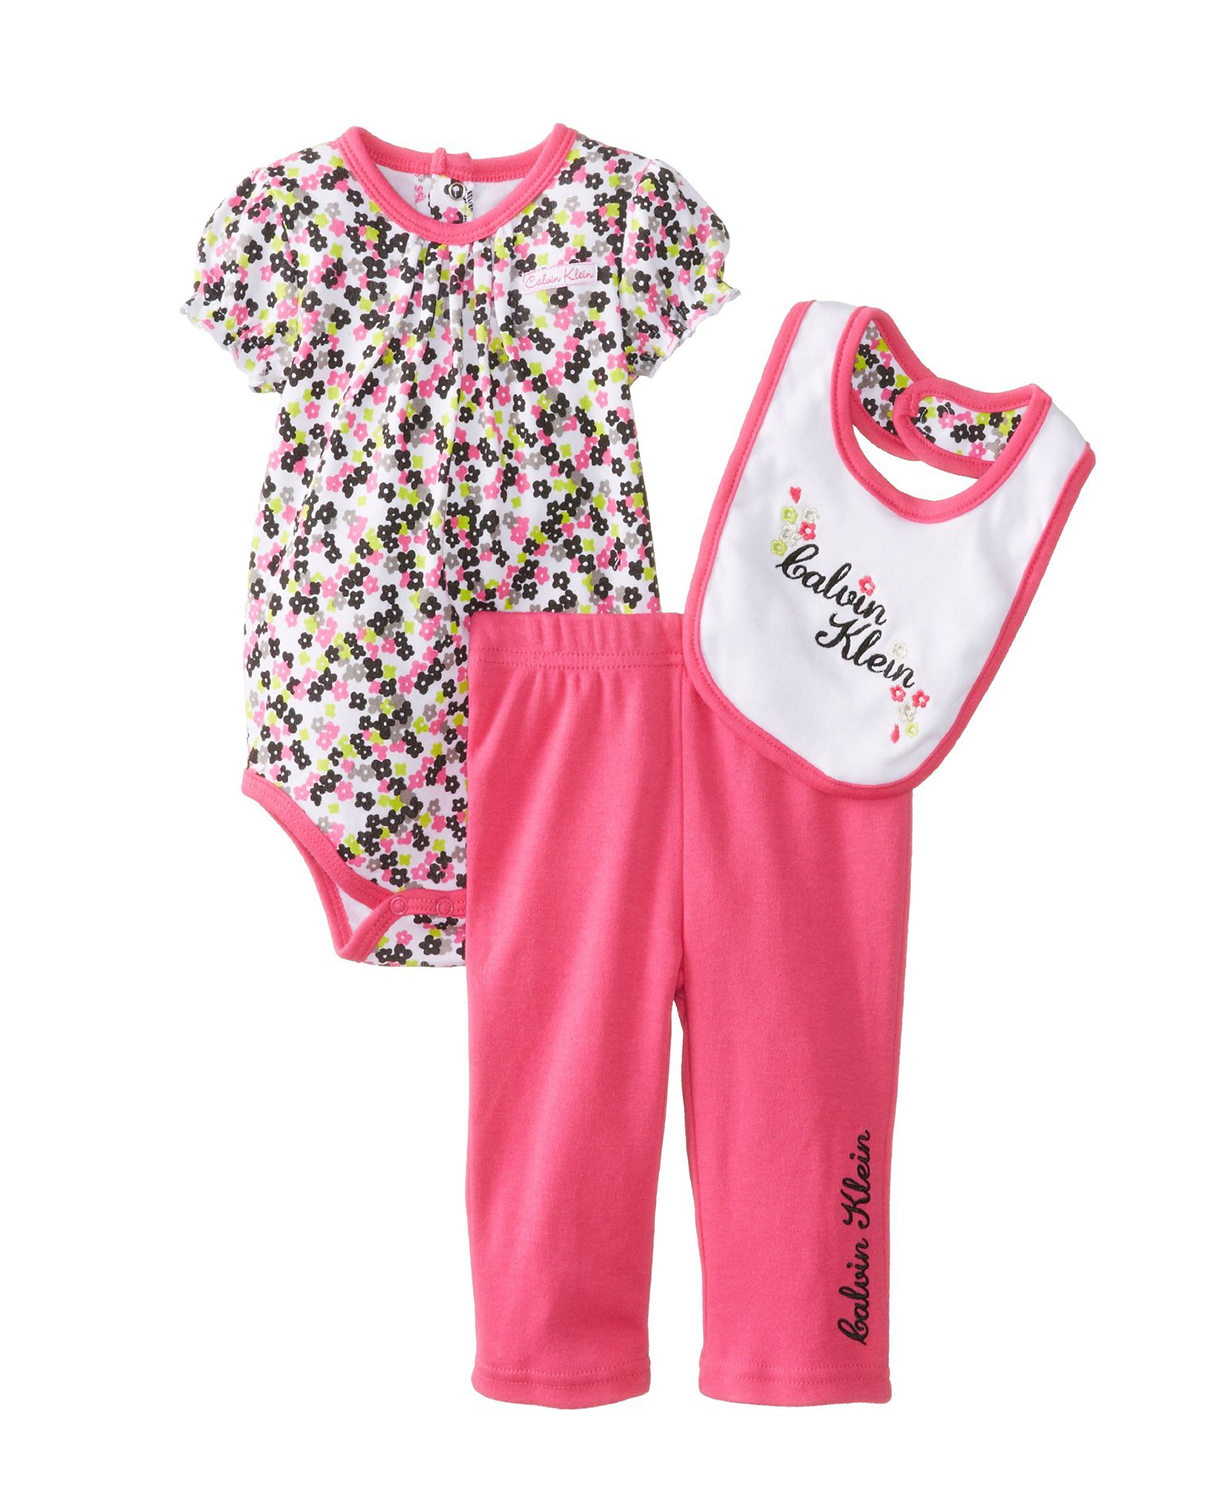 02838d981 Pink Calvin Klein Printed Baby Girl Bodysuit with Pull On Pants - Baby  Clothes, Baby Clothing, Baby Bodysuits, Baby Boy Clothes, Baby Girl Clothes,  ...